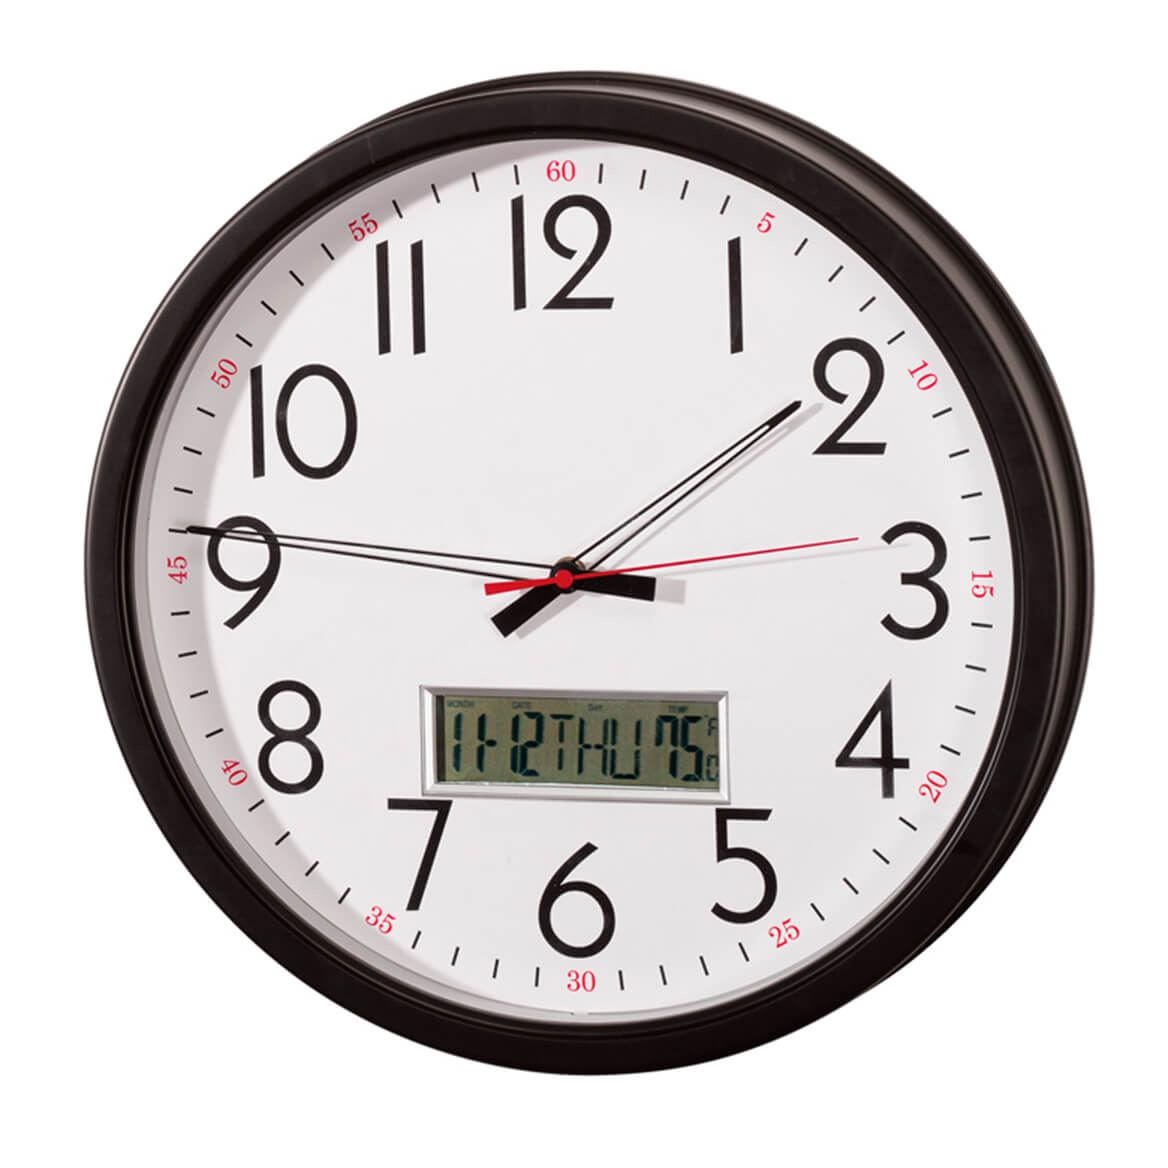 4-in-1 Giant Wall Clock-338825